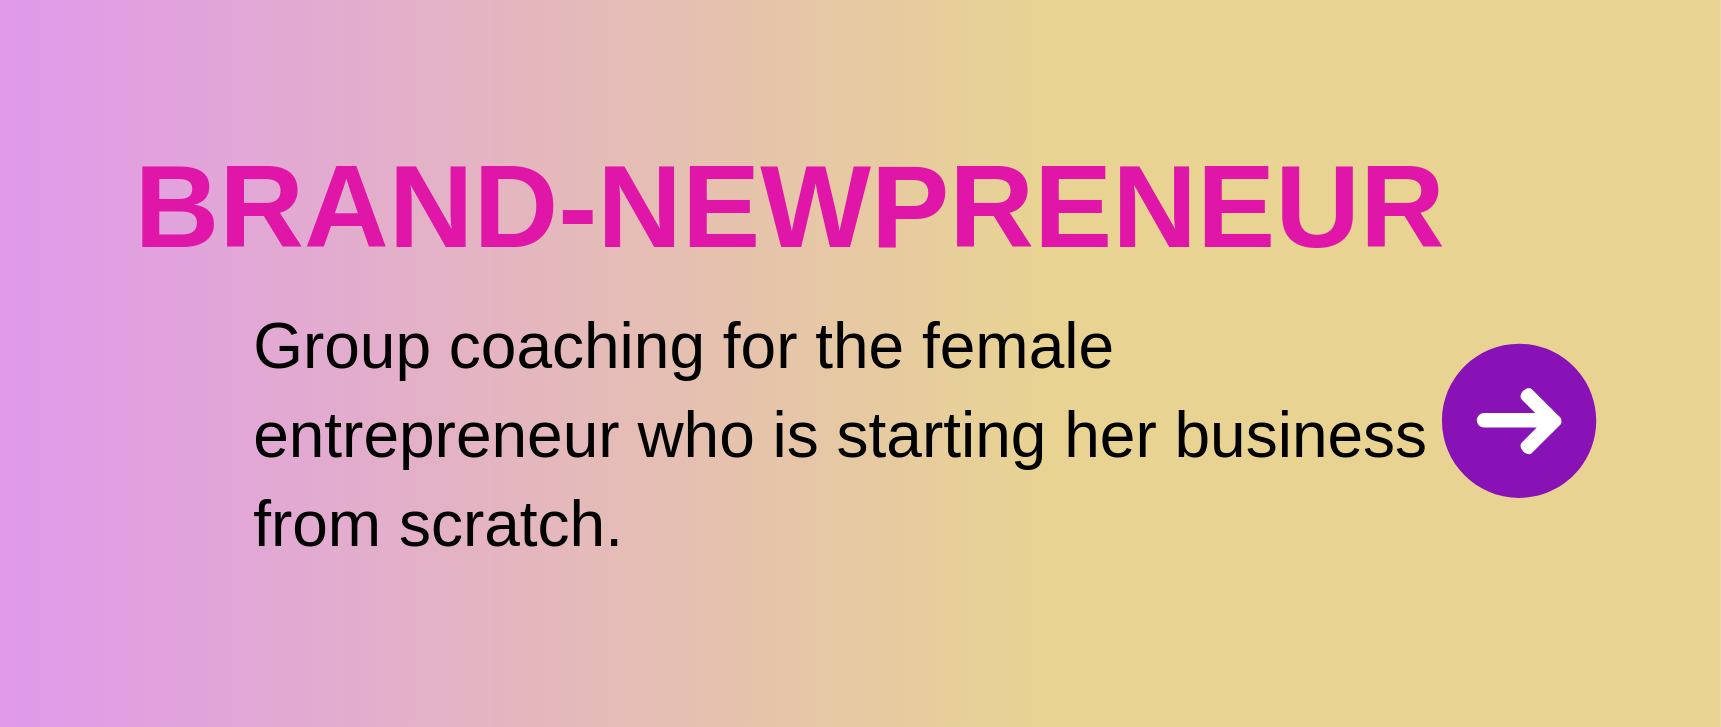 Brand-Newpreneur group coaching for the female entrepreneur who is starting her business from scratch.